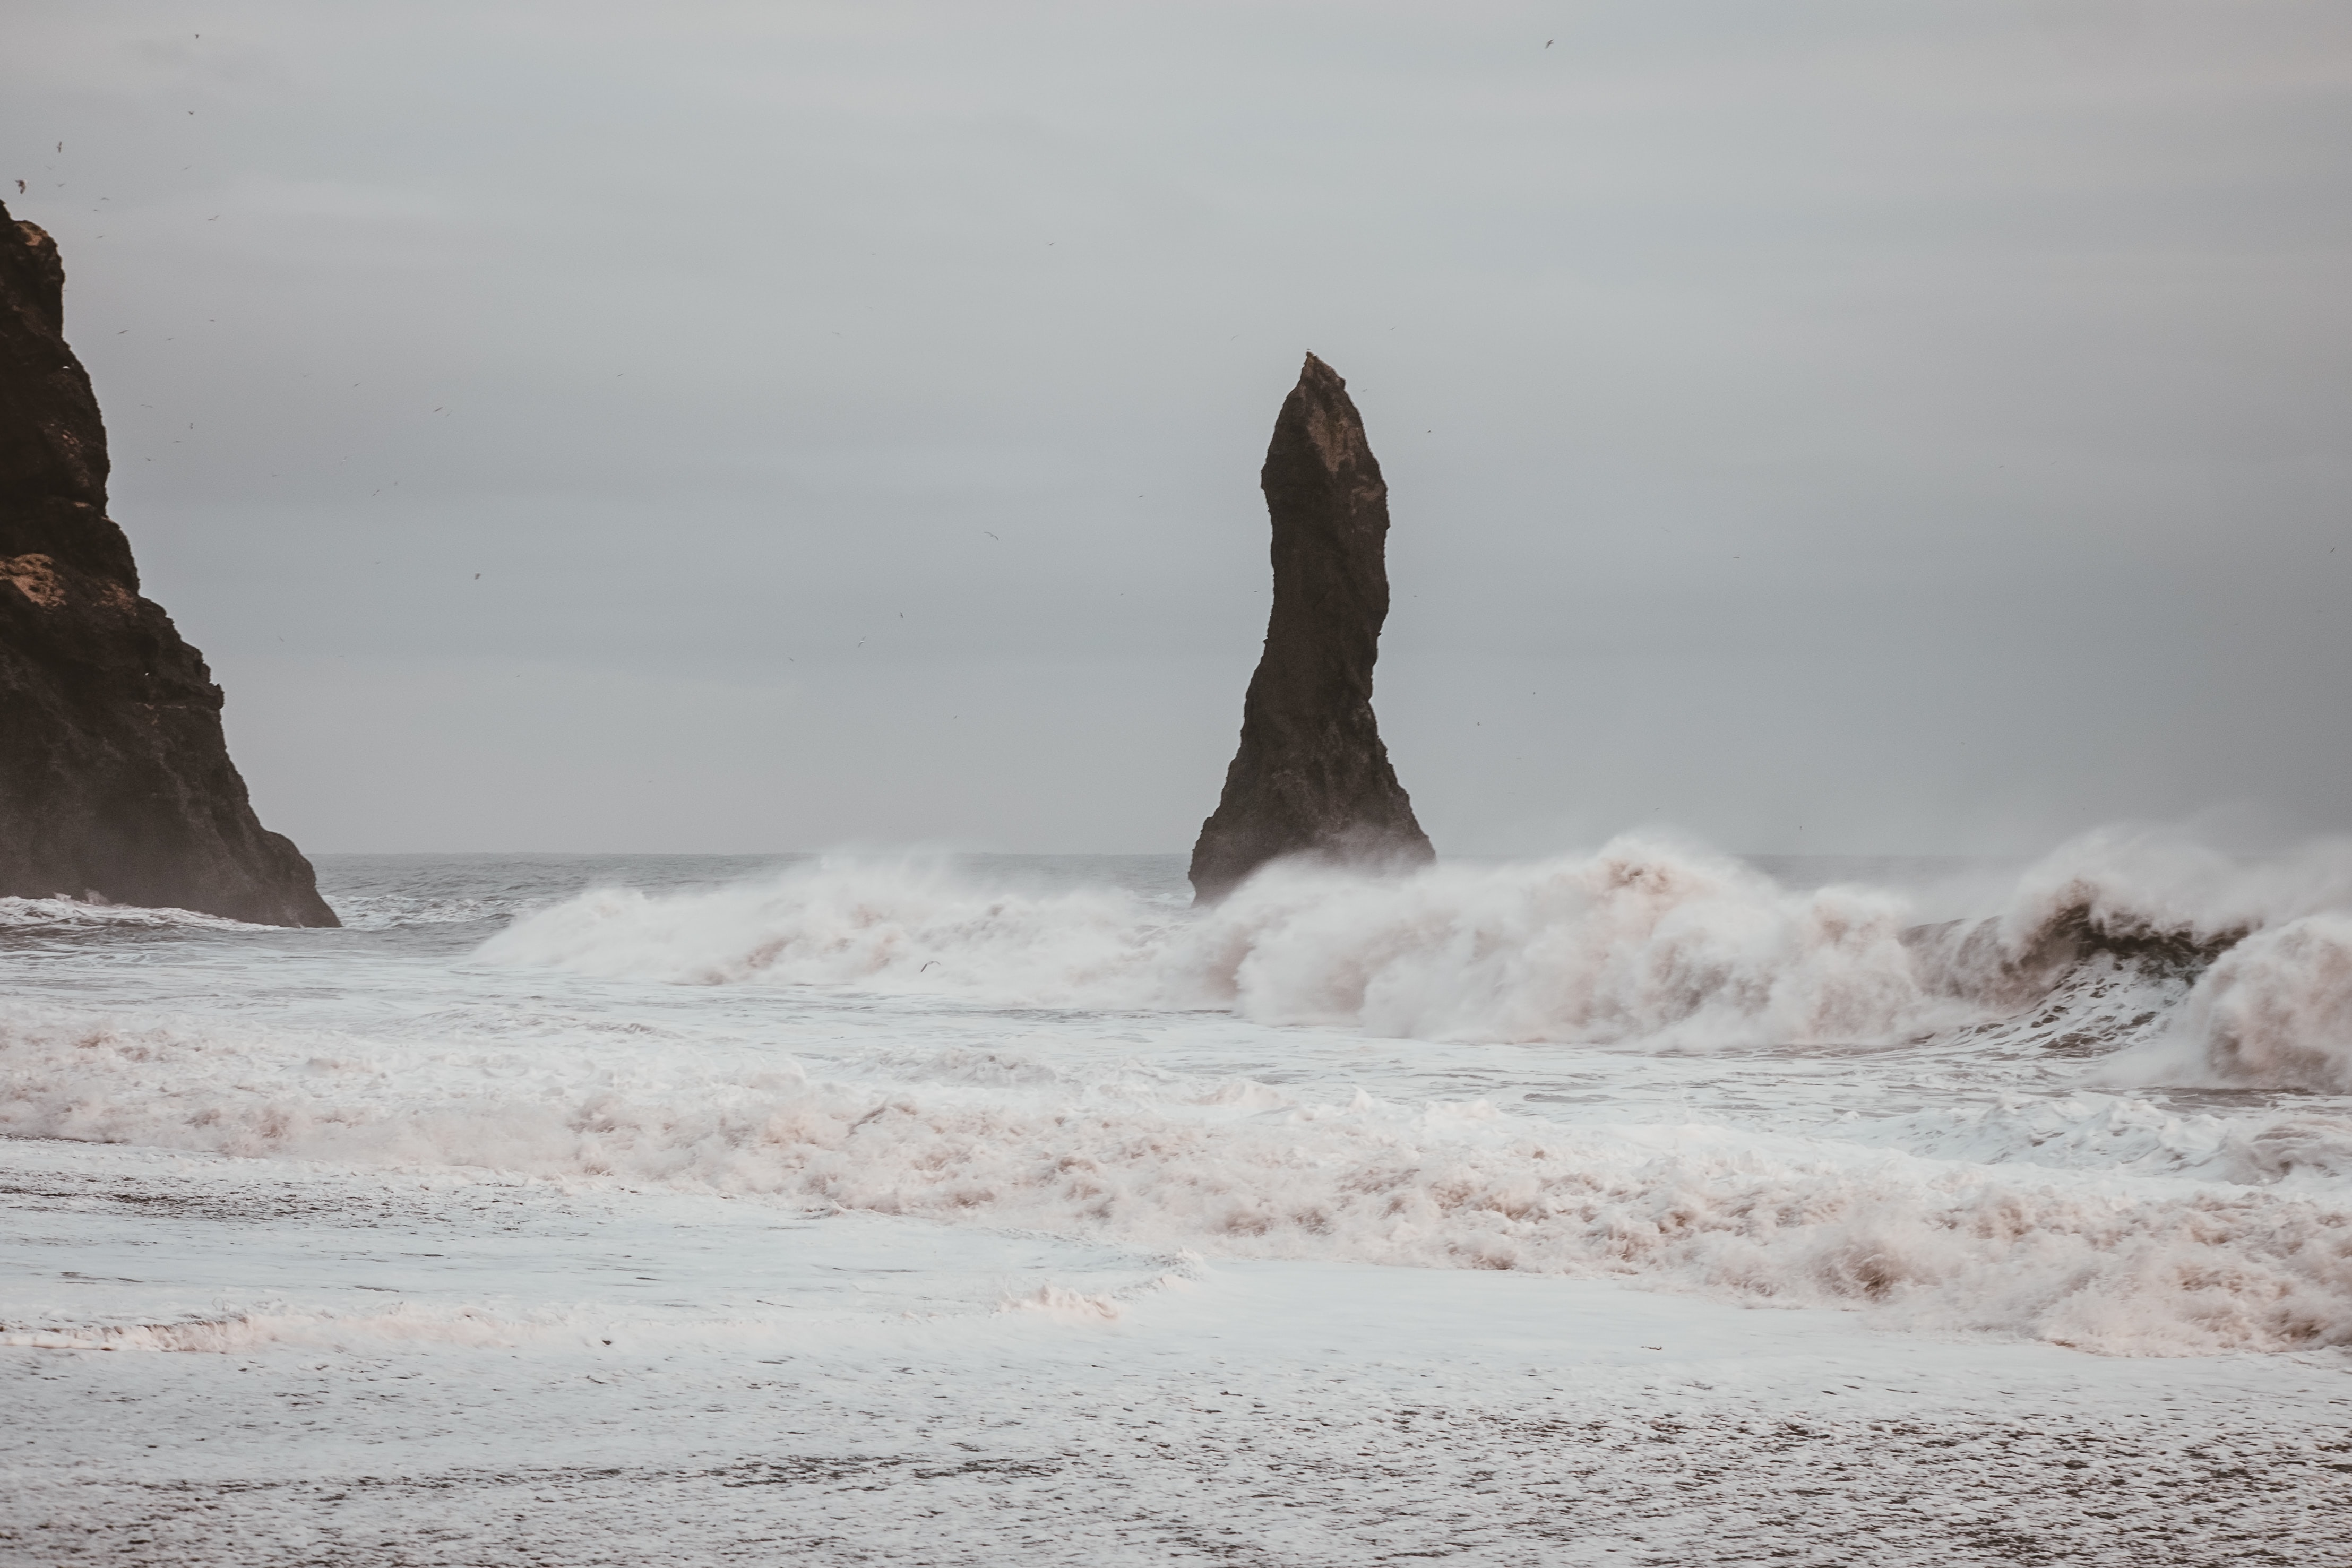 ocean waves move near rock formation under cloudy sky